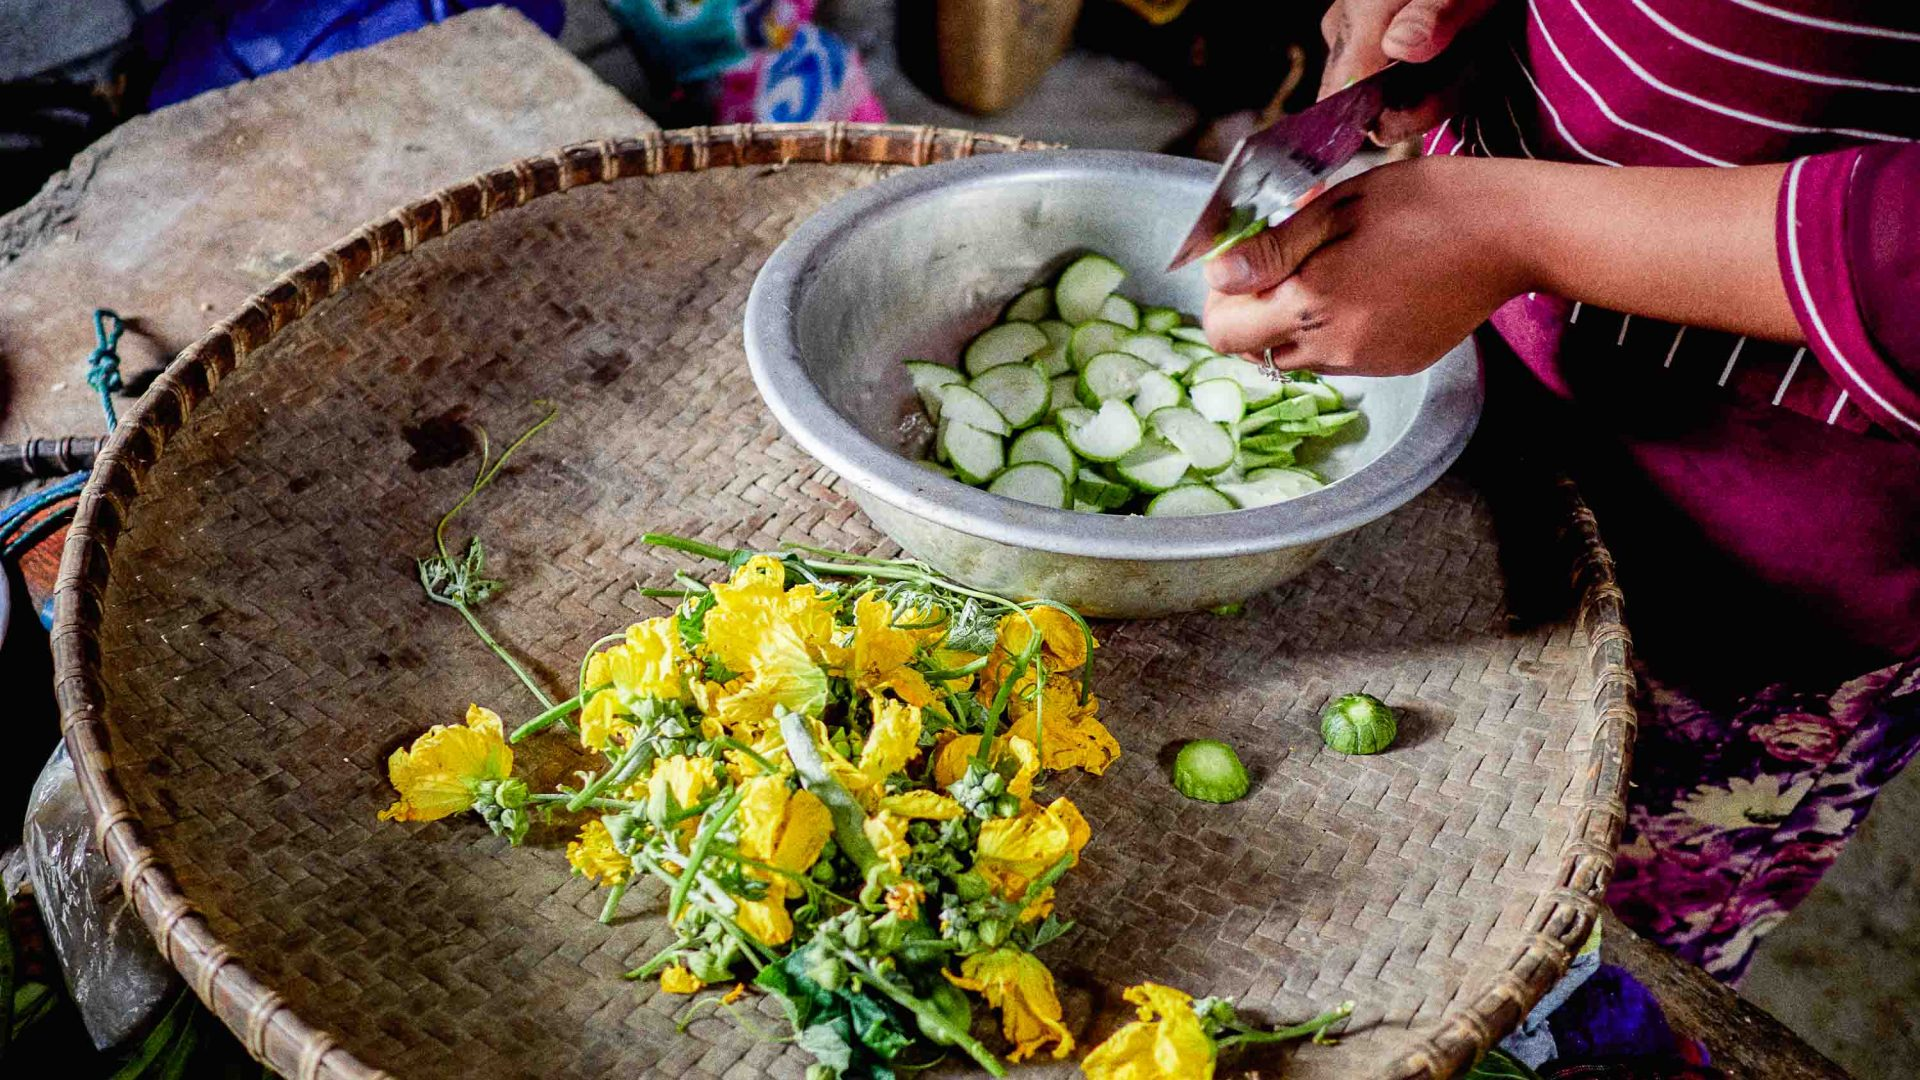 A woman prepares a meal using flowers and other greens in Laos.